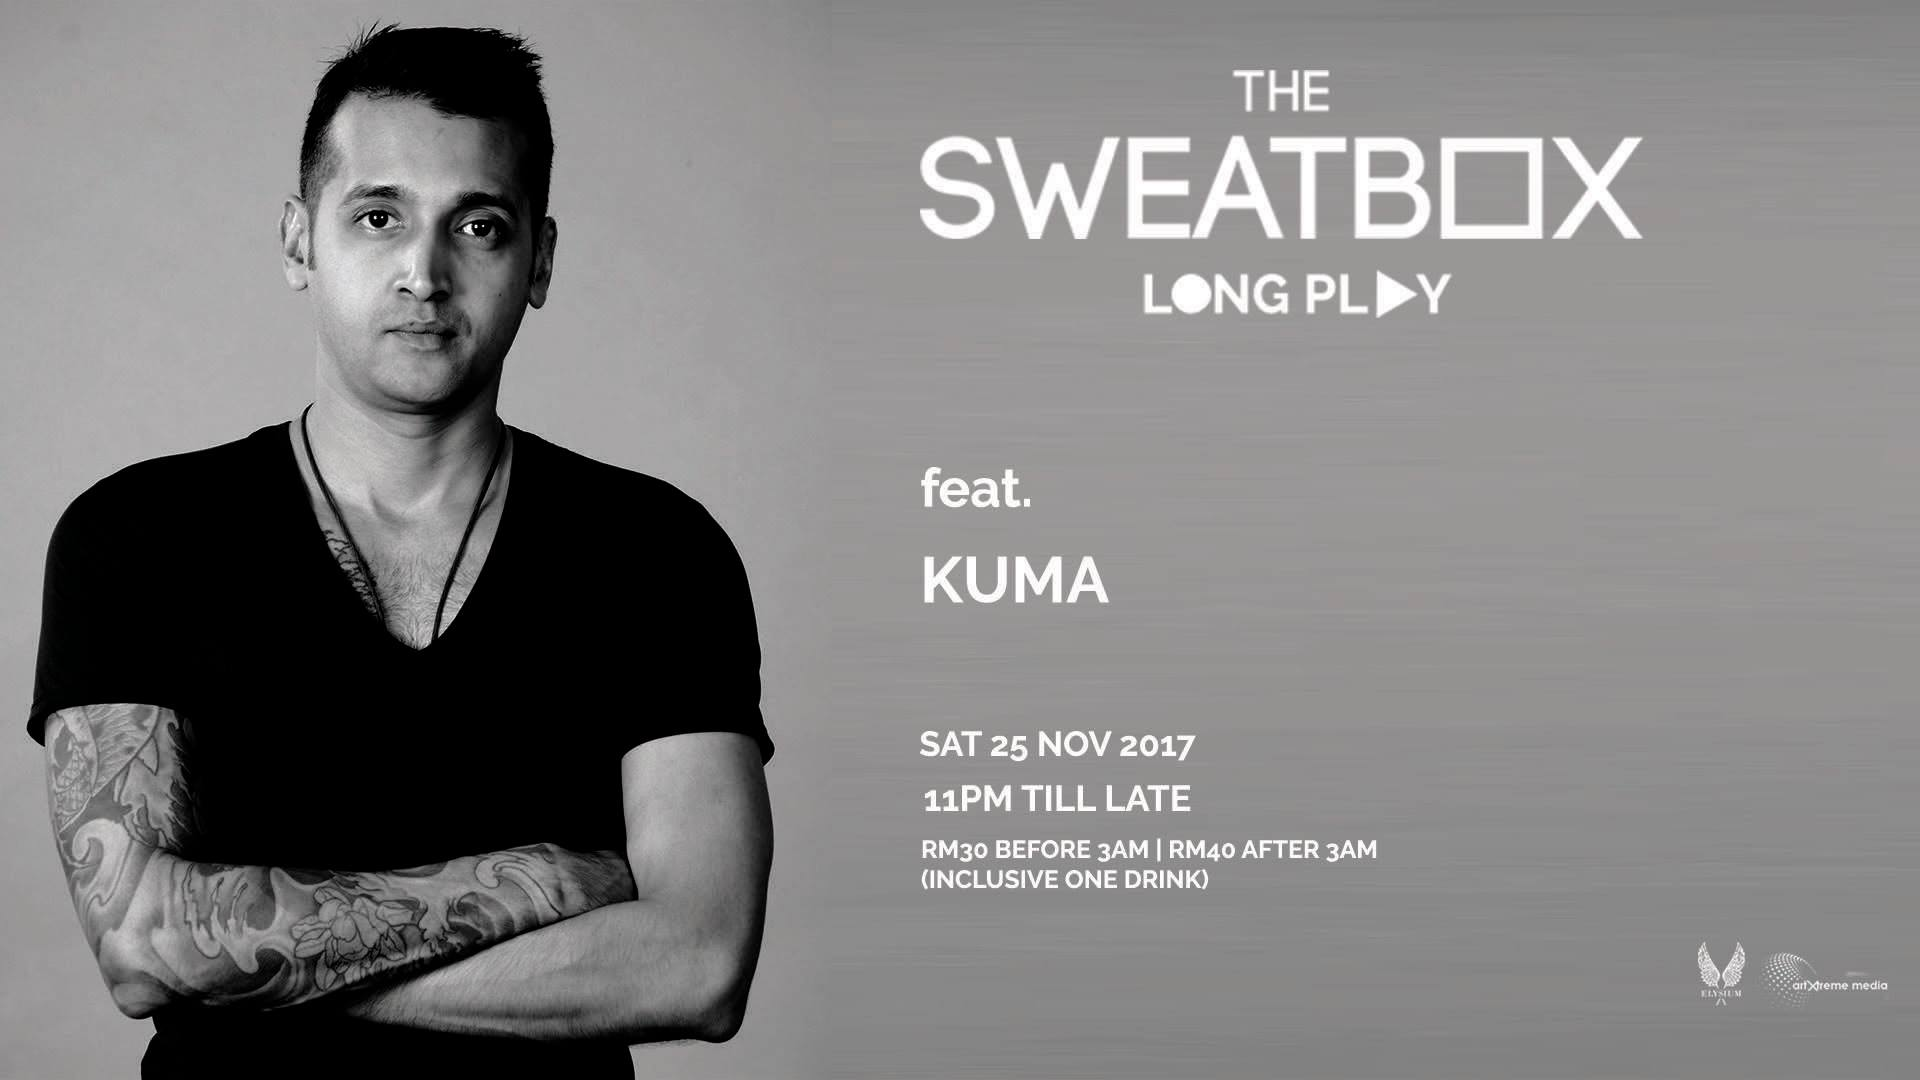 Sweatbox Long Play 10 featuring DJ Kuma at Elysium November 25